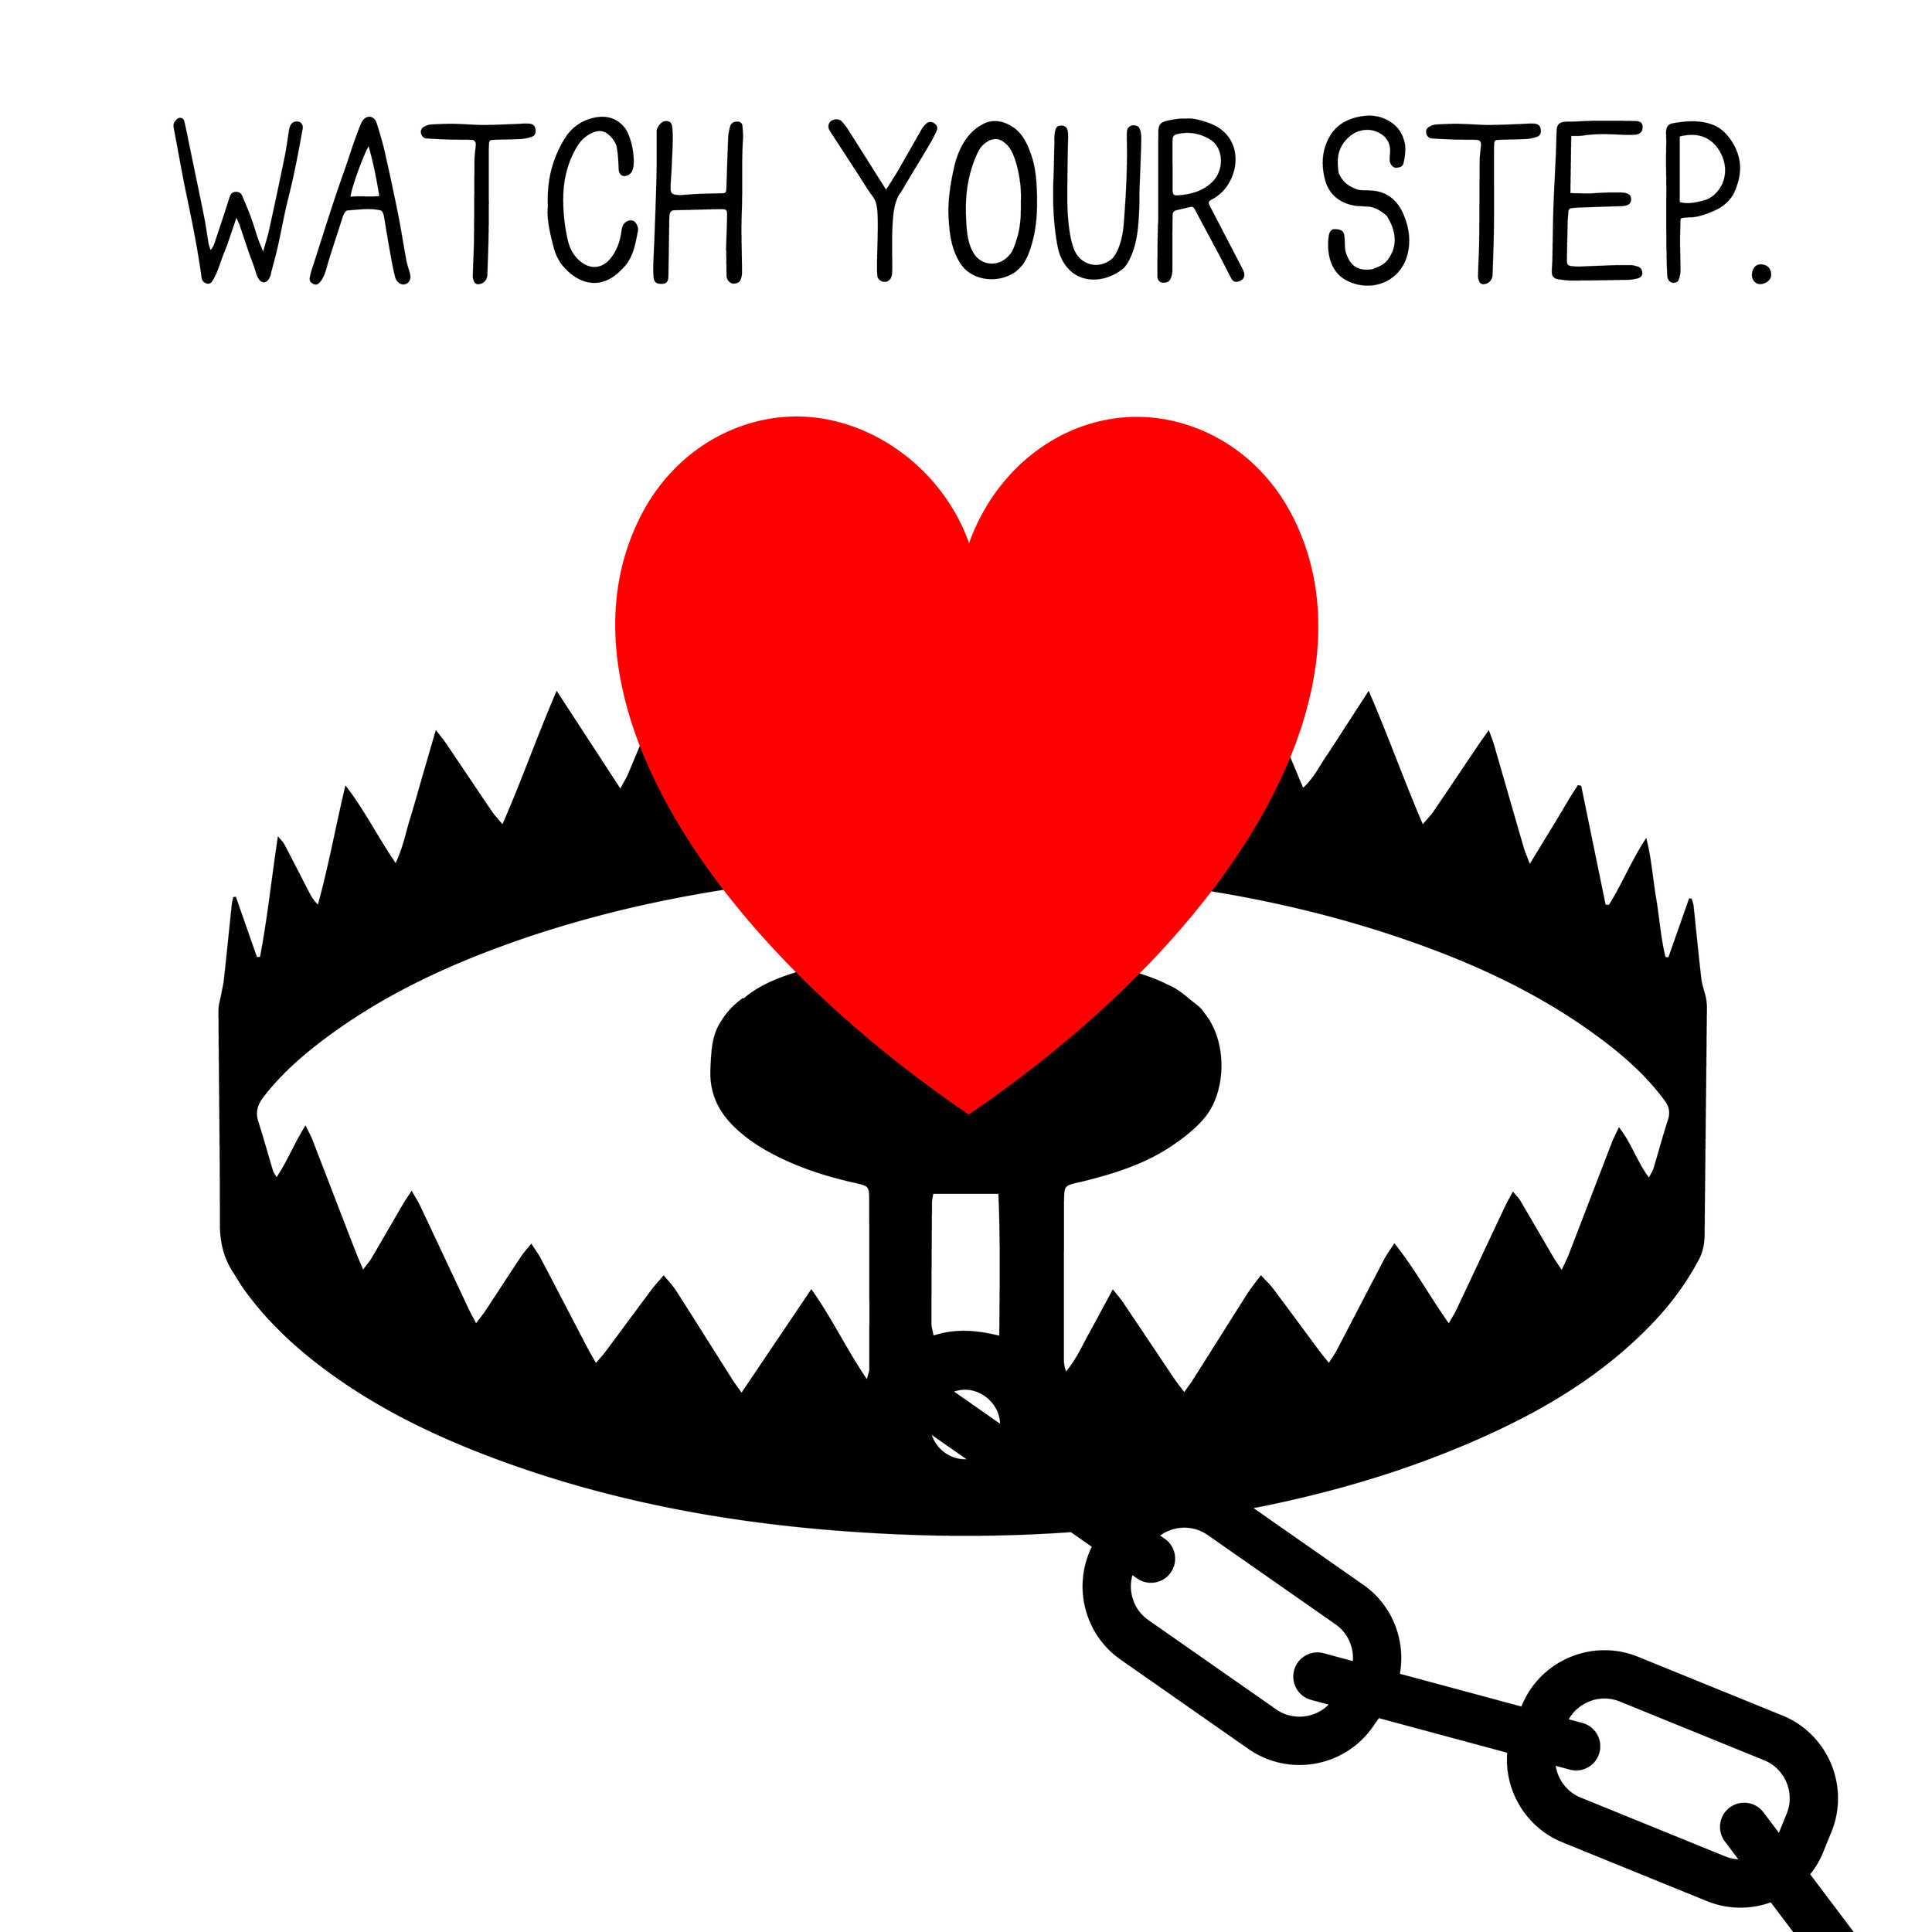 watchyourstep-01.jpg